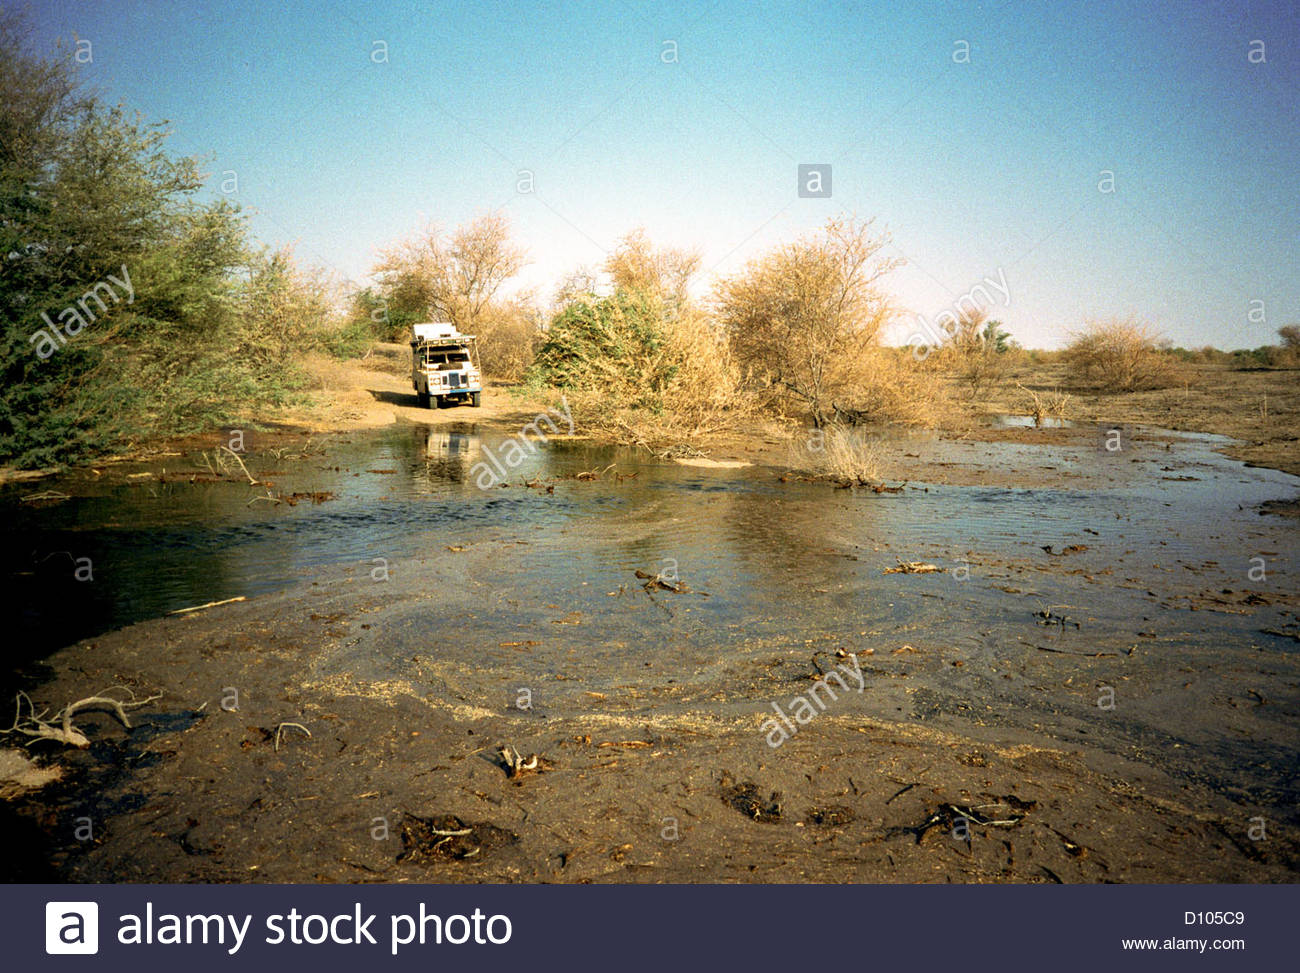 lake chad african africa africans land rover safa - Stock Image